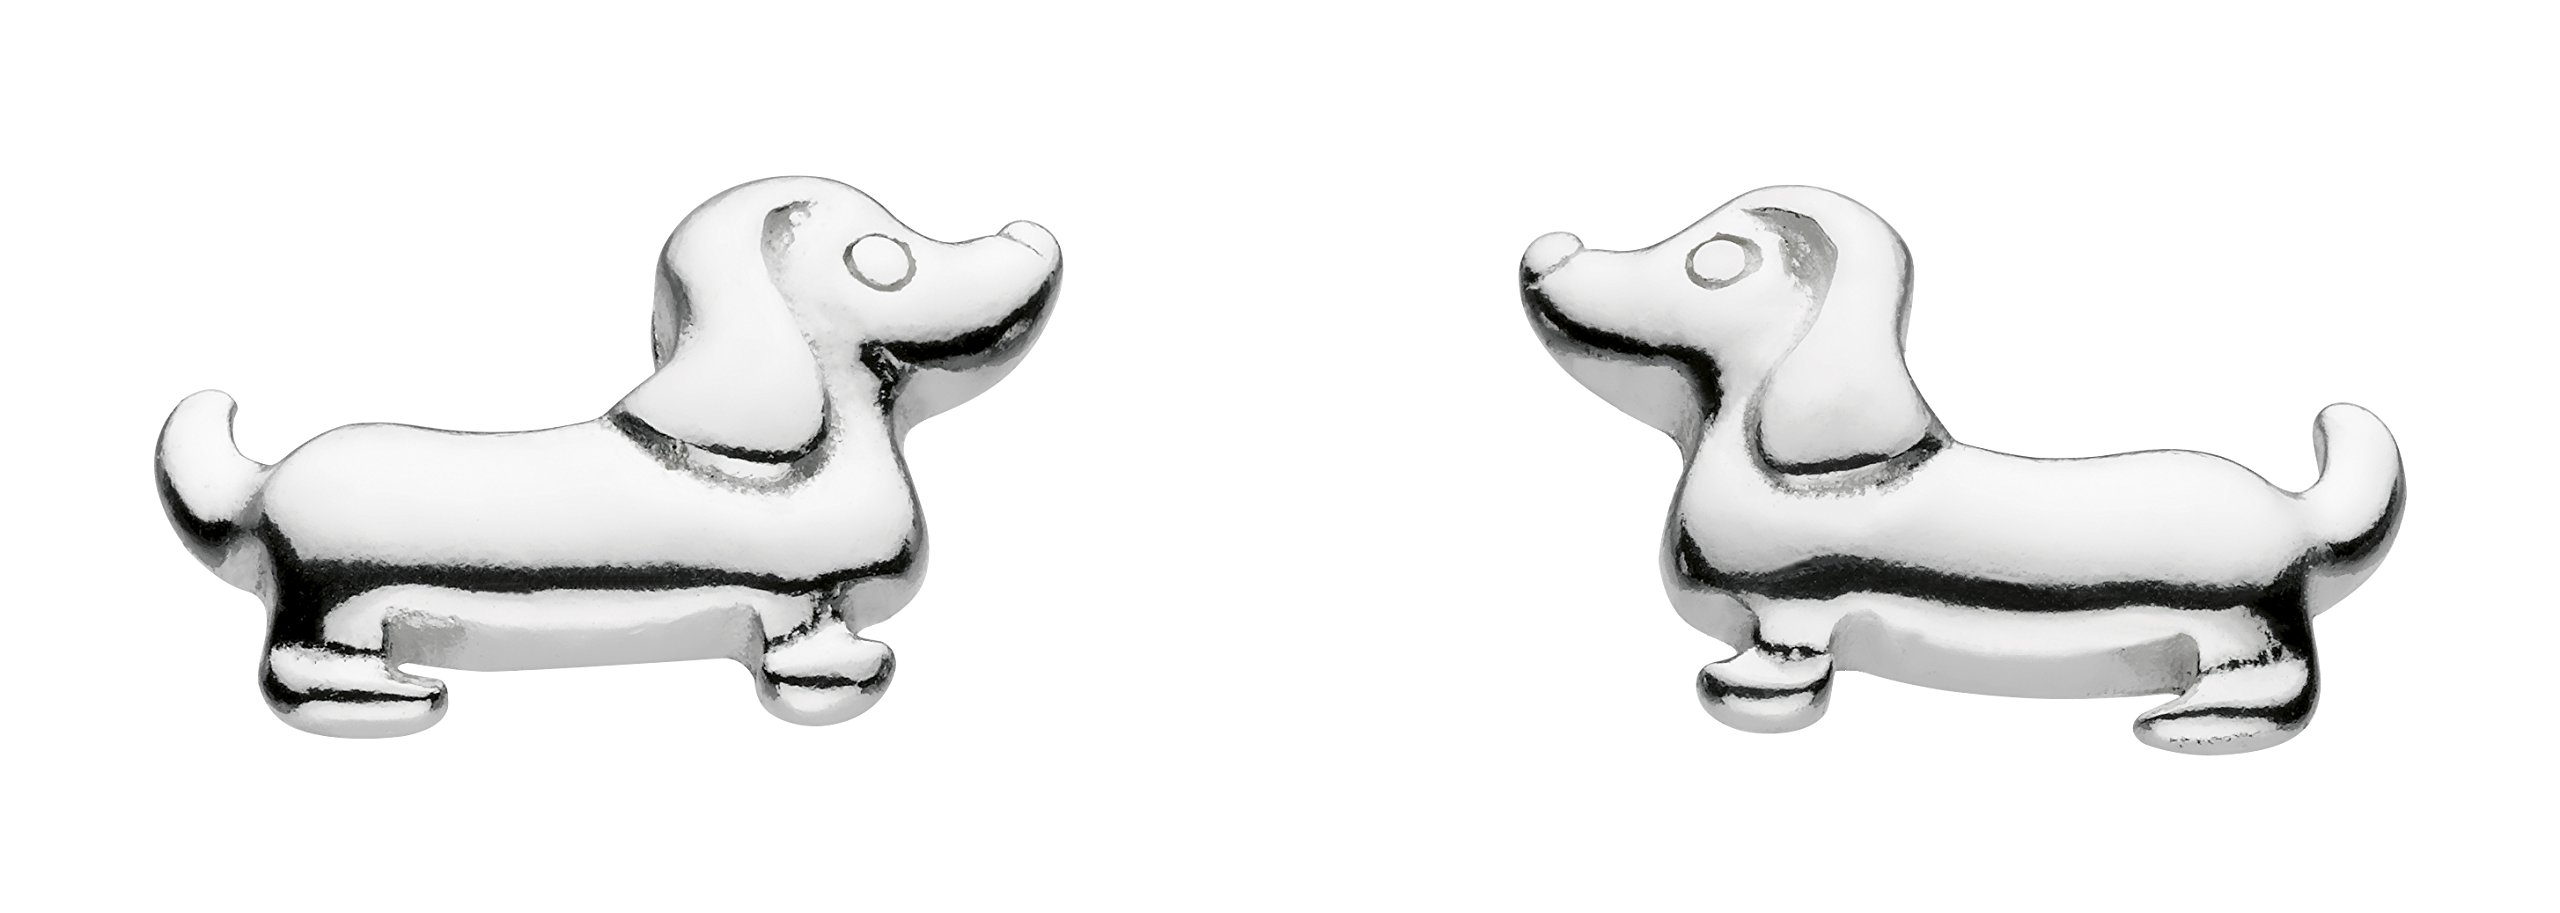 Dew Girl's Sterling Silver Charming Sausage Dog Stud Earrings AMA4860